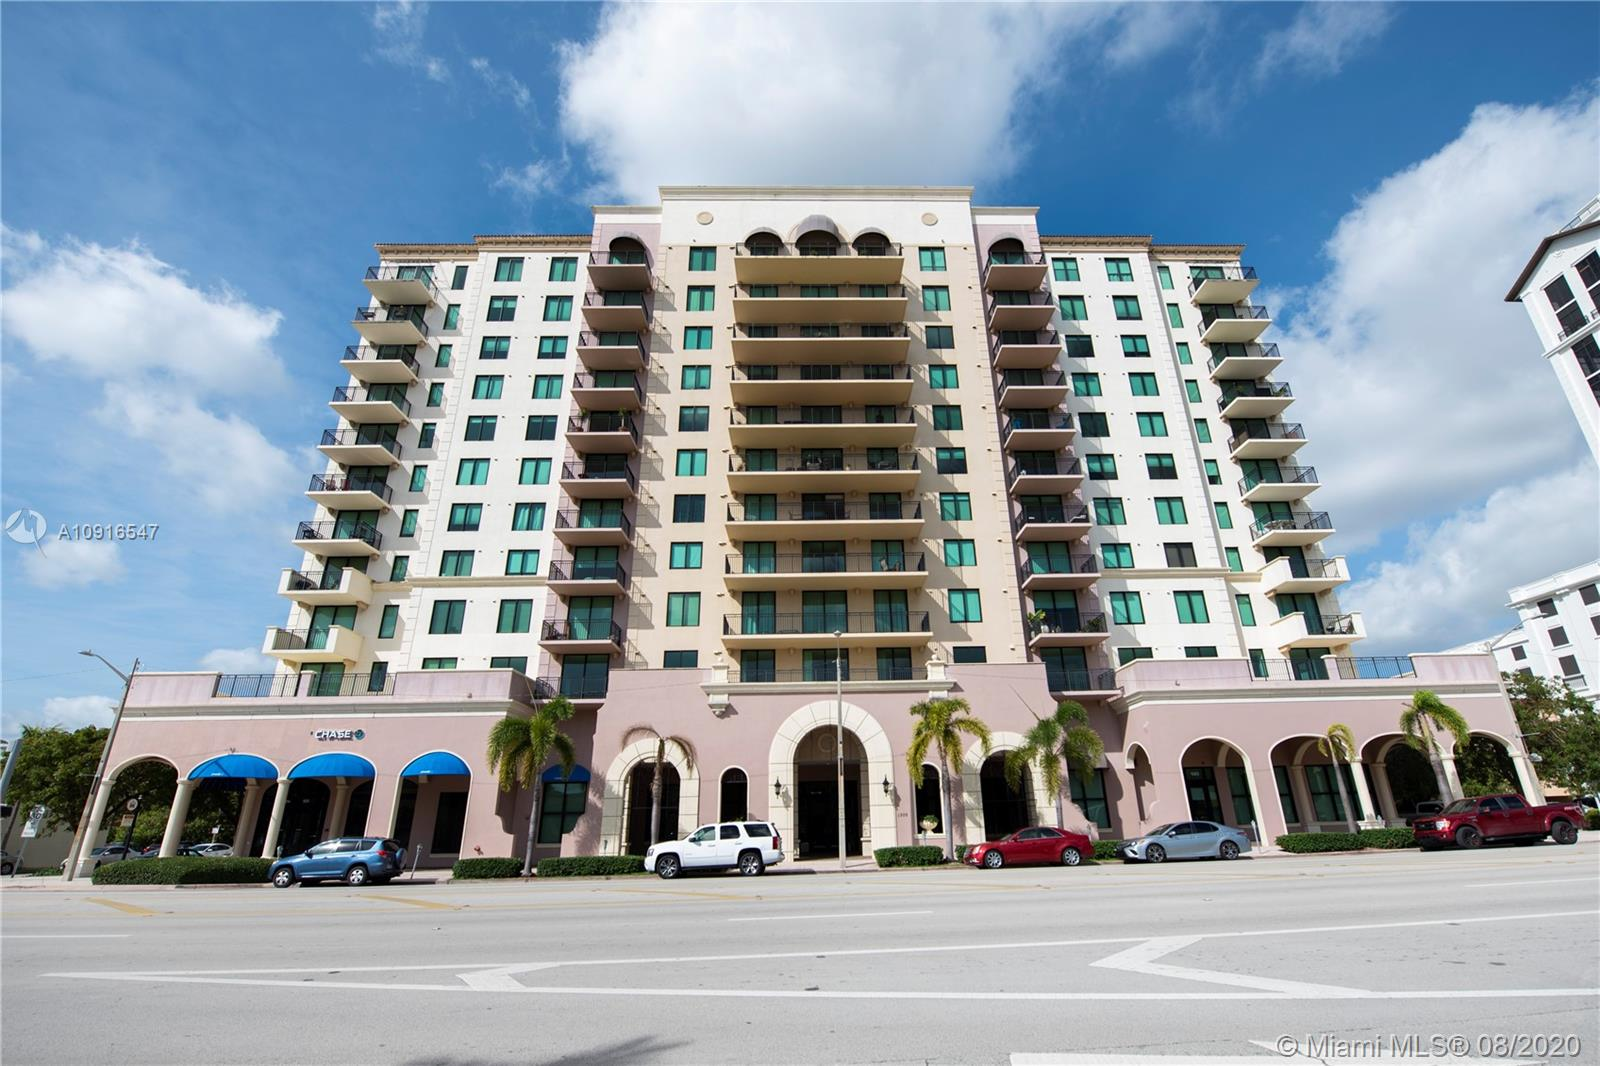 SPACIOUS CONDO IN CORAL GABLES, ONLY BLOCKS OFF MIRACLE MILE AND RIGHT ON PONCE DE LEON. BEAUTIFUL VIEW TO DOWNTOWN BRICKELL.MINUTES FROM MERRICK PARK AND WALK TO SHOPS, RESTAURANTS, AND MORE. CLOSE TO AIRPORT. INCLUDES WOOD CABINETS IN KITCHEN AND BATHROOMS, GRANI TE COUNTER TOPS IN KITCHEN, MARBLE COUNTER TOPS IN BATHROOMS, ALL STAINLESS-STEEL KITCHEN APPLIANCES. IMPACT WINDOWS. 2 PARKING SPACES (ASSIGNED). EXCELLENT LOCATION.